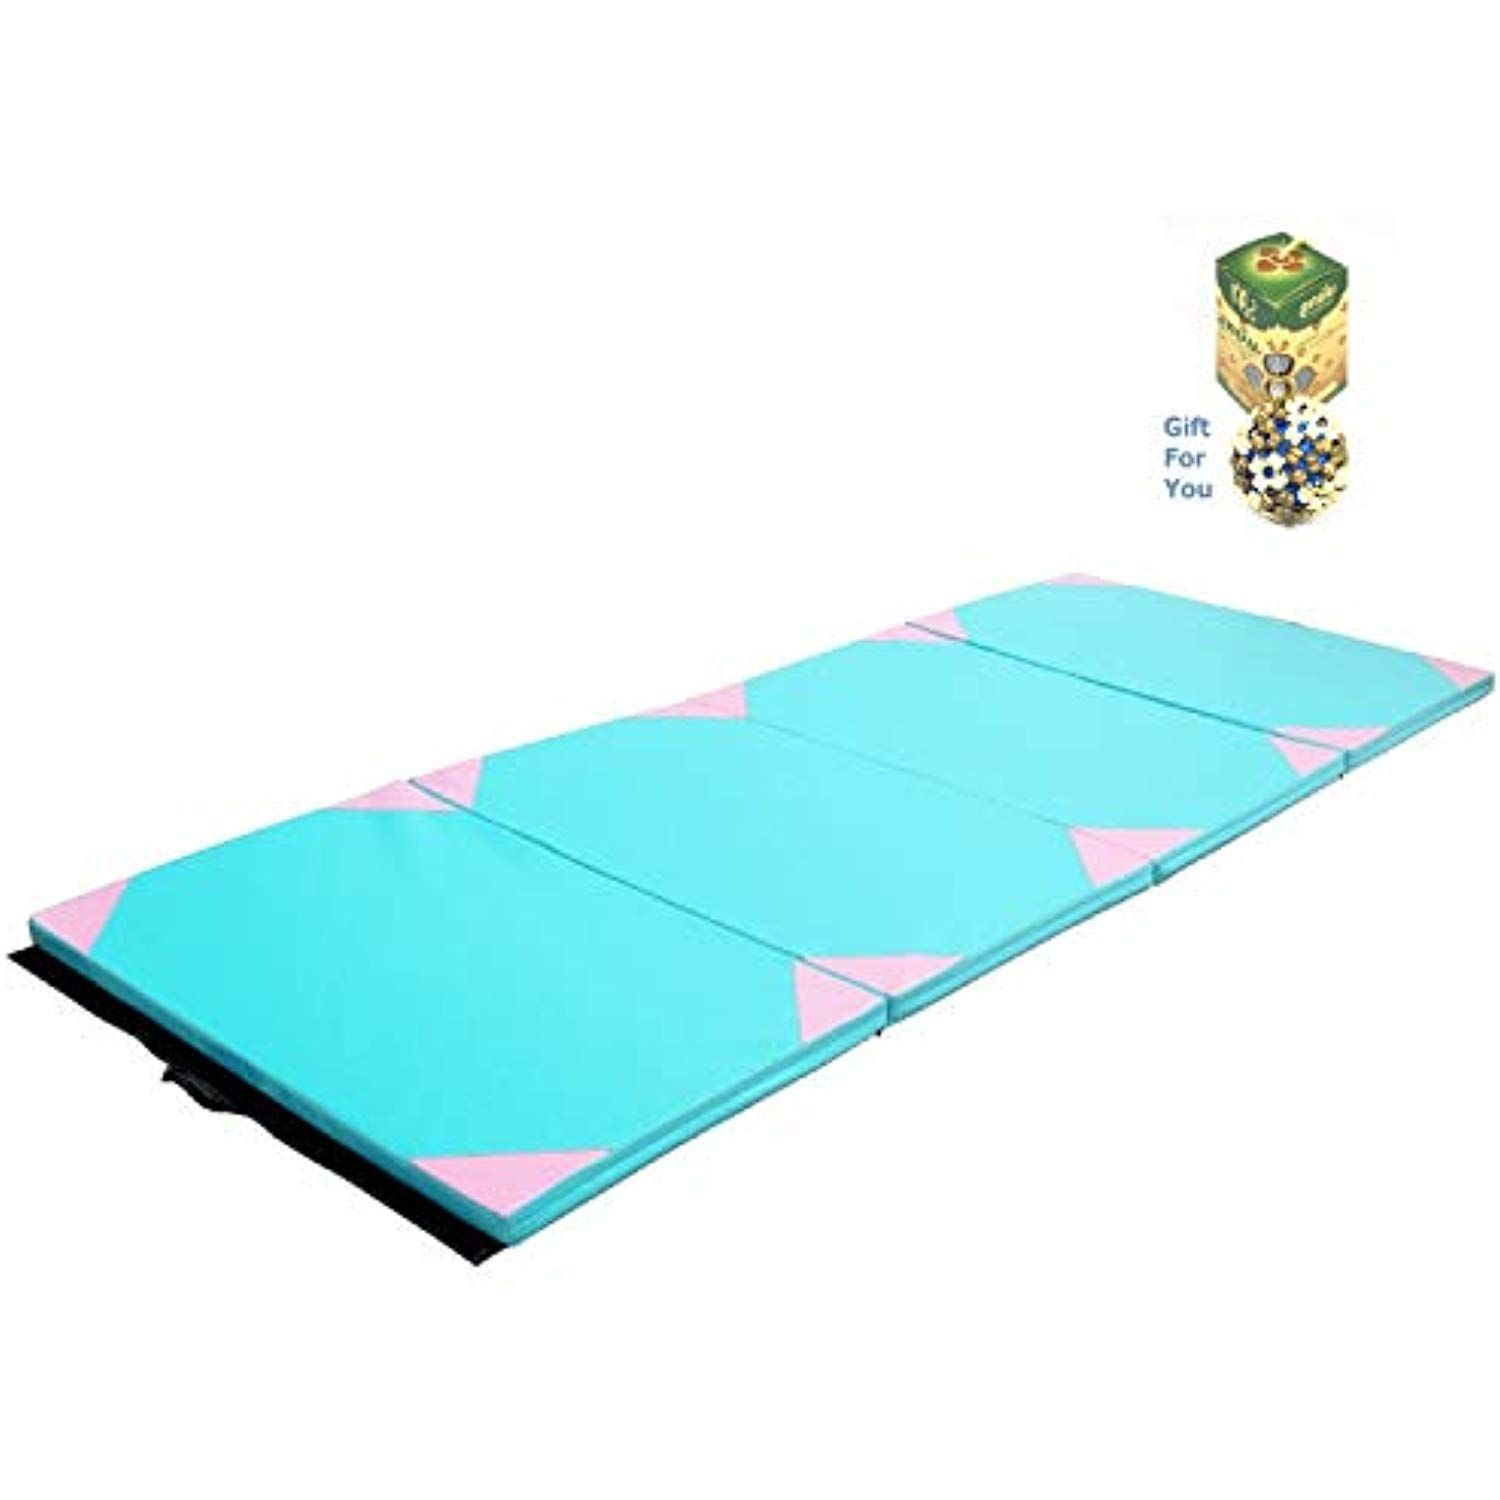 COSTWAY 4'x10'x2 Thick Gym Fitness Exercise Gymnastics Mat